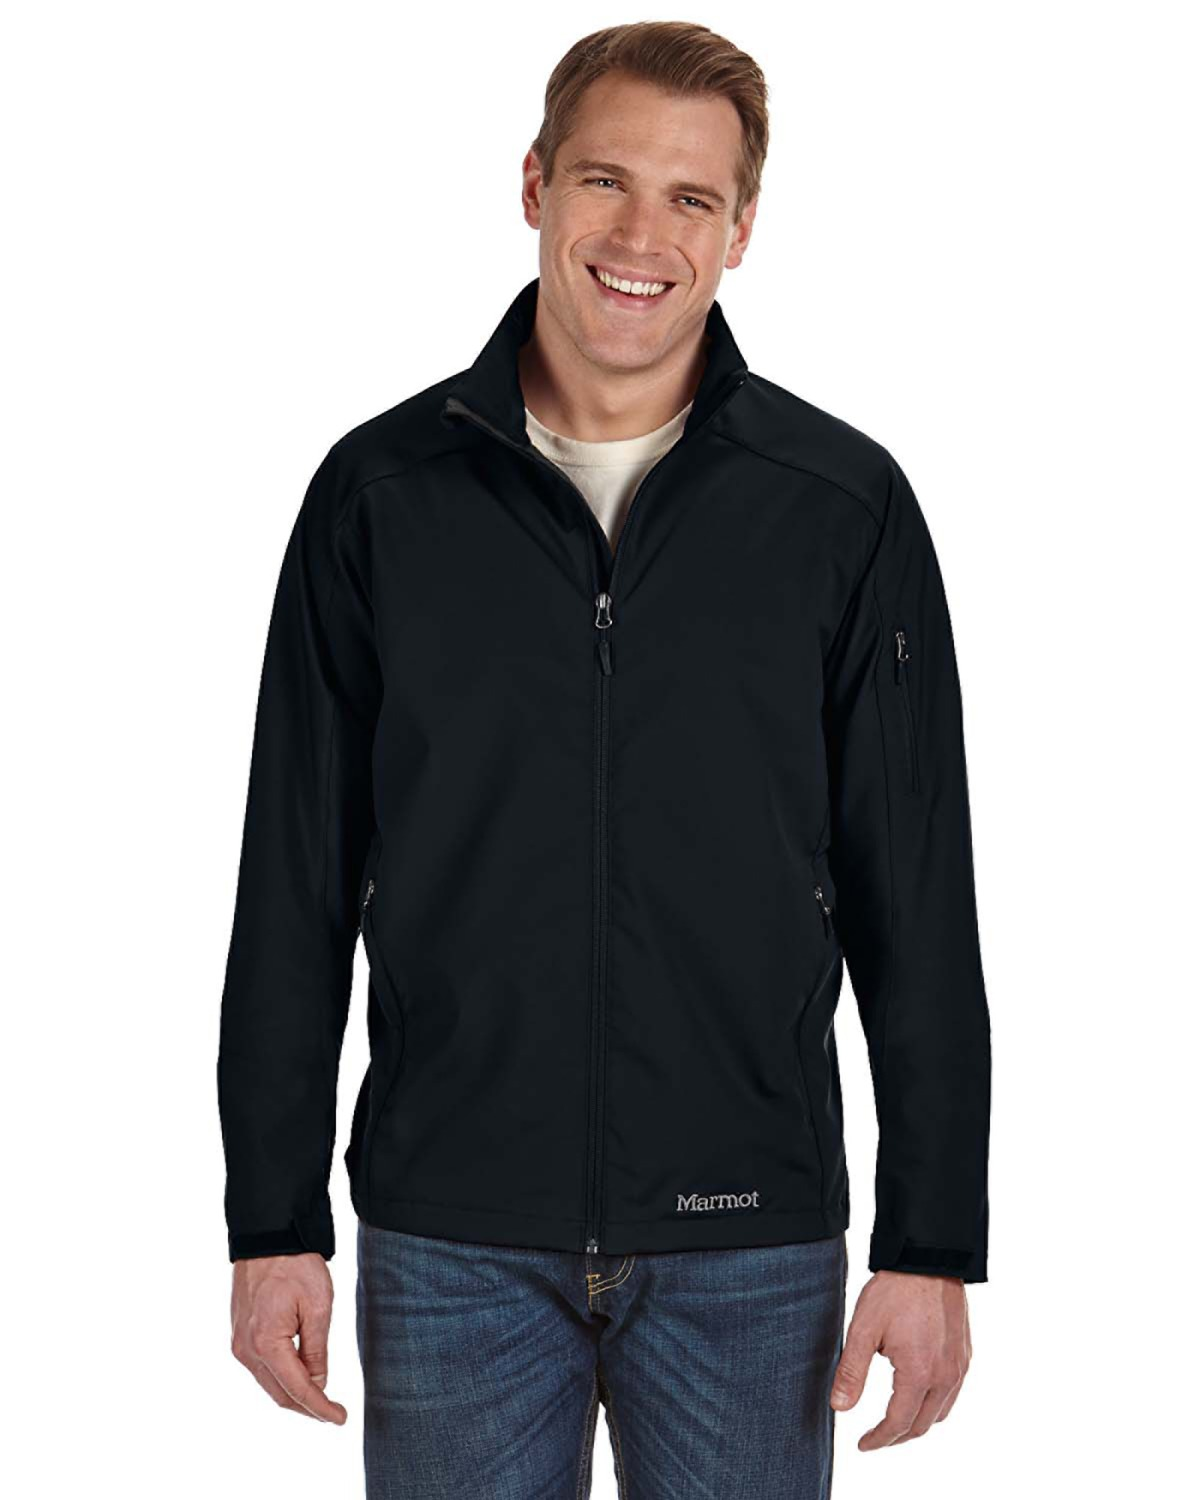 Marmot - 94410 Men's Approach Jacket, Pensacola, Embroidery, Screen Printing, Logo Masters International